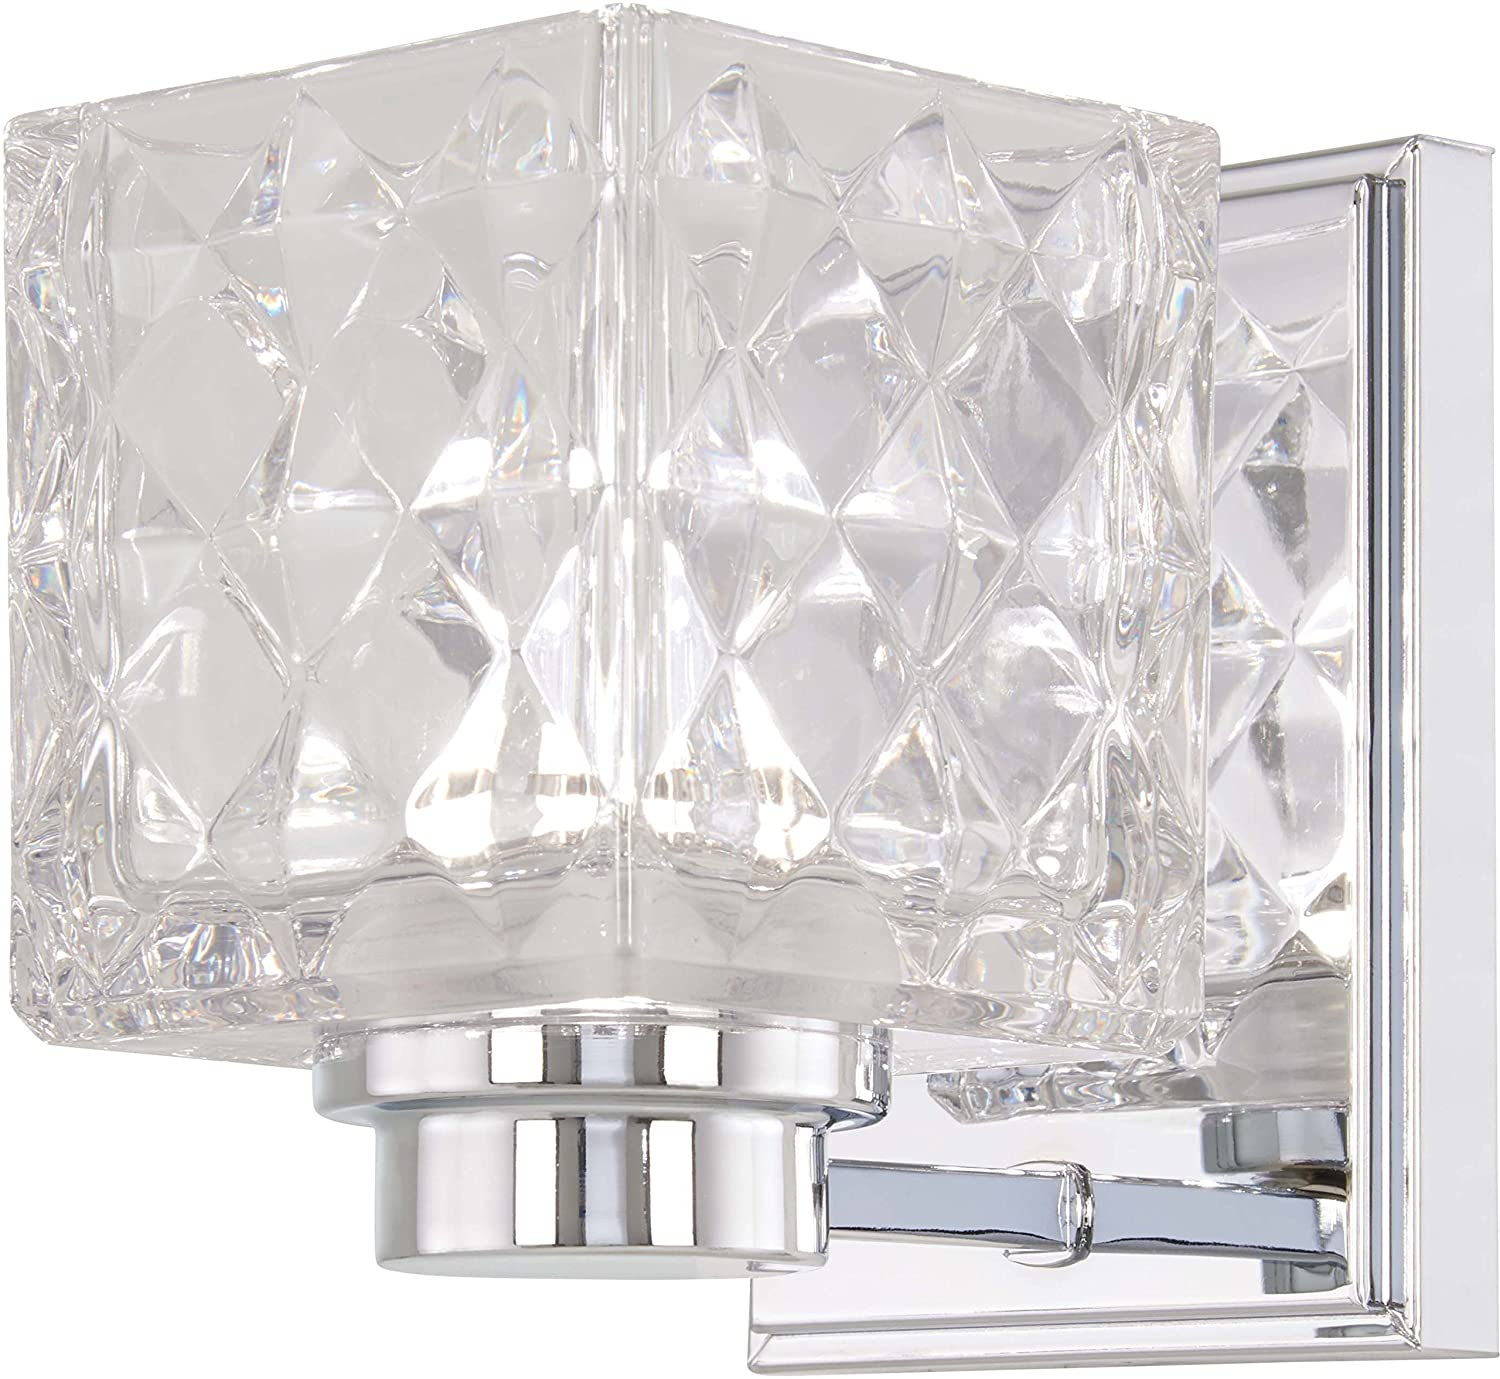 Minka Lavery Wall Light Fixtures 4791-77-L Glorietta Bath Vanity Lighting, 1-Light LED 8 Watts, Chrome